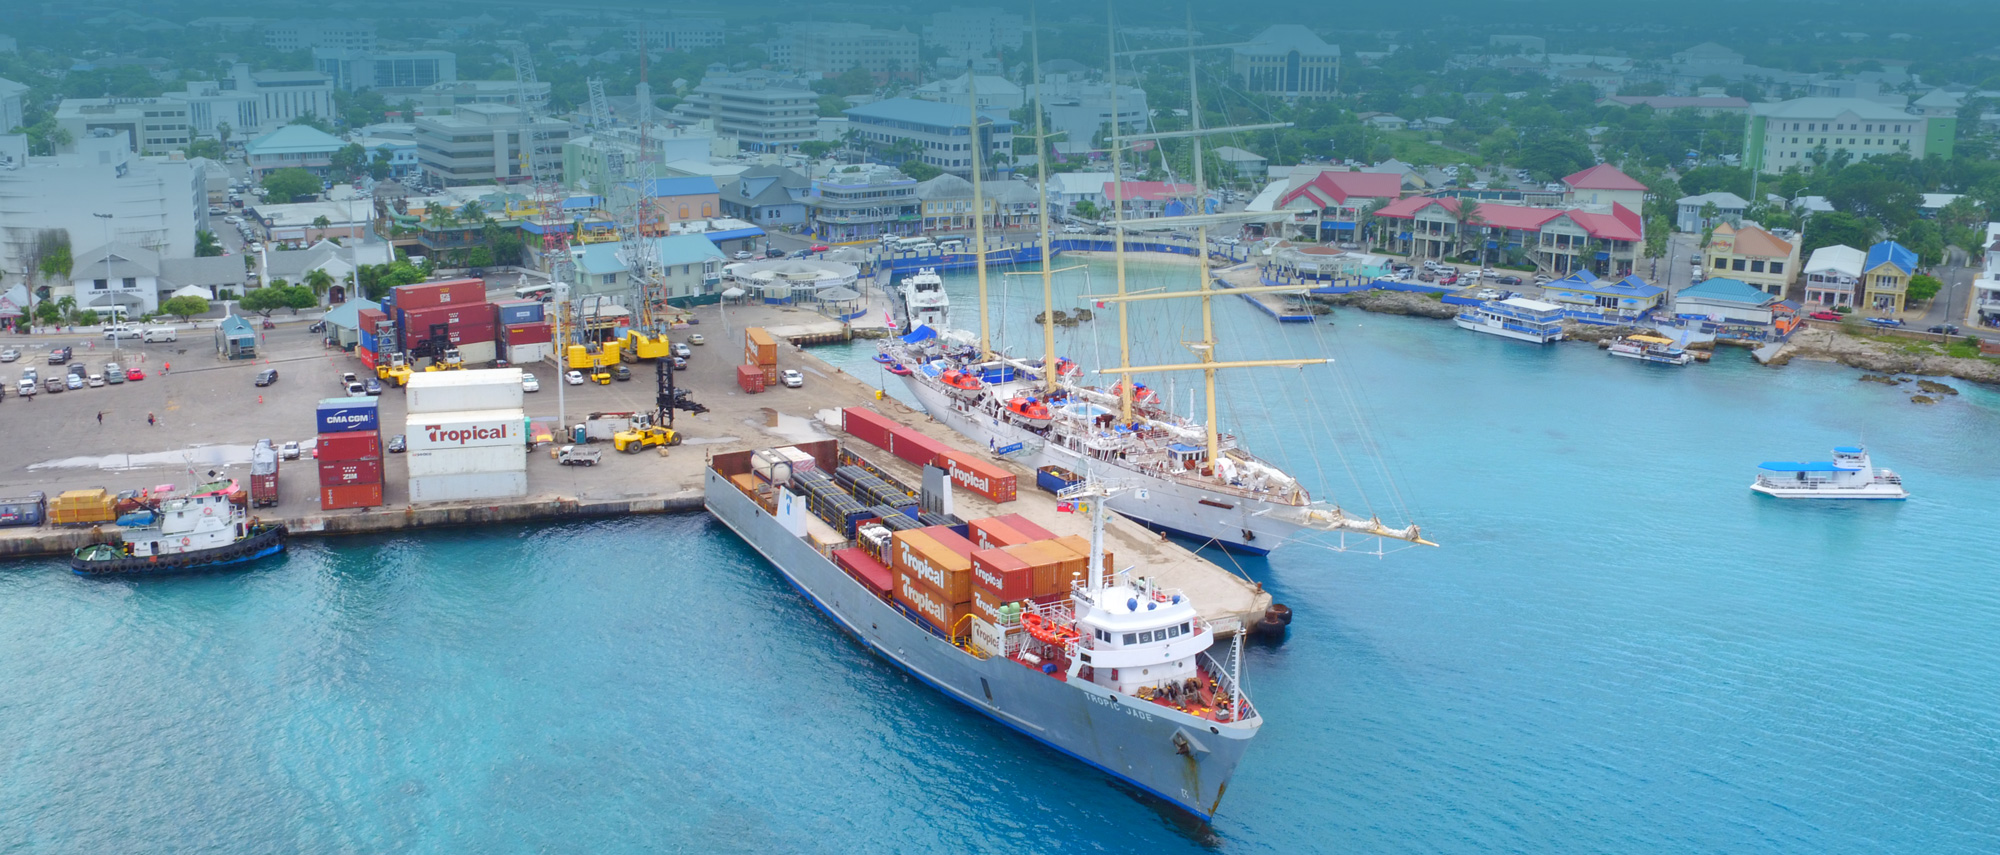 Port of George Town Arial View, Cayman Islands